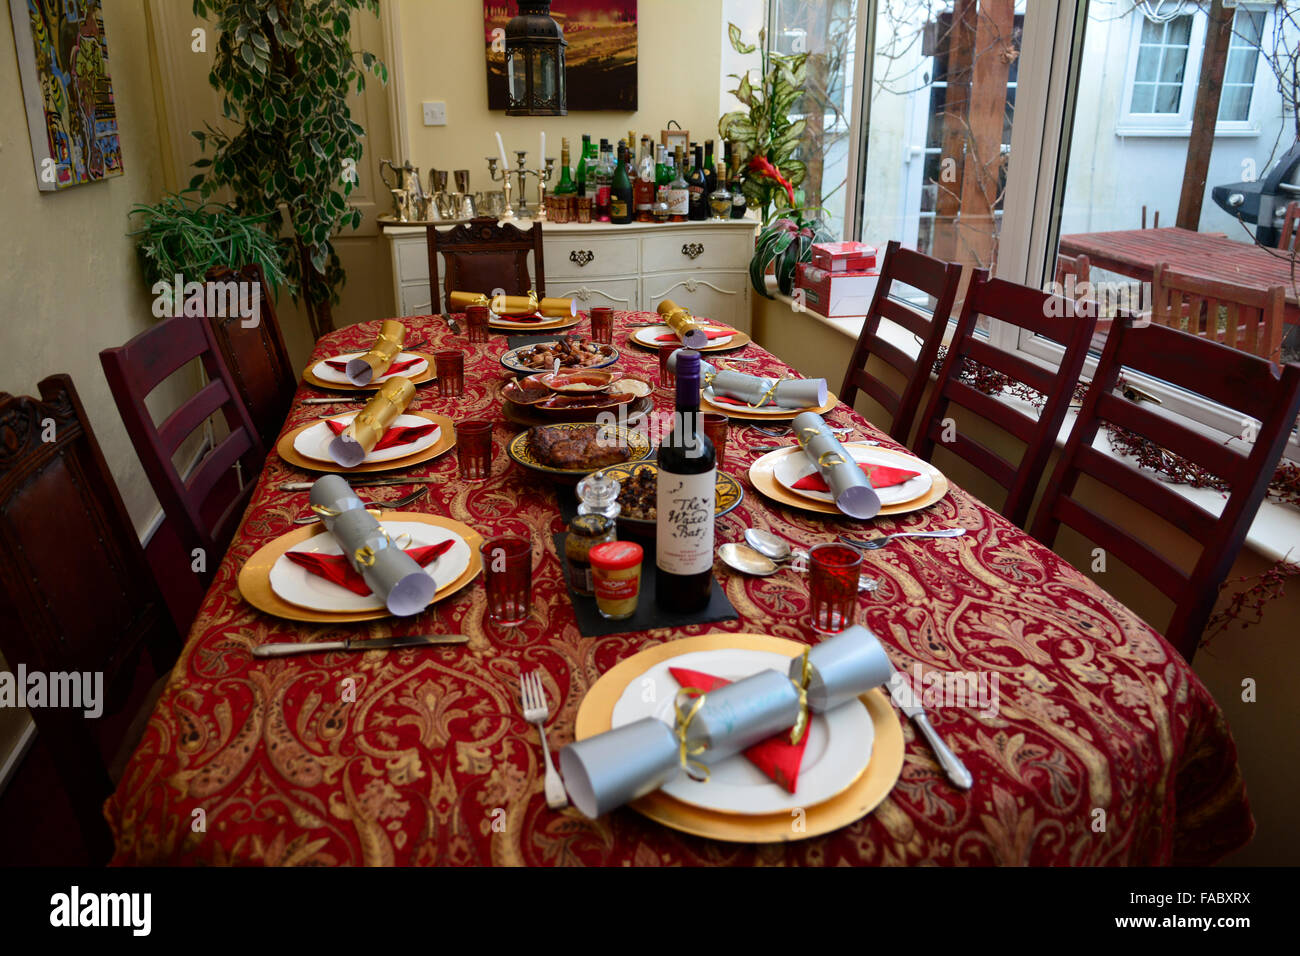 Home made food served on Christmas Day in a family home. - Stock Image